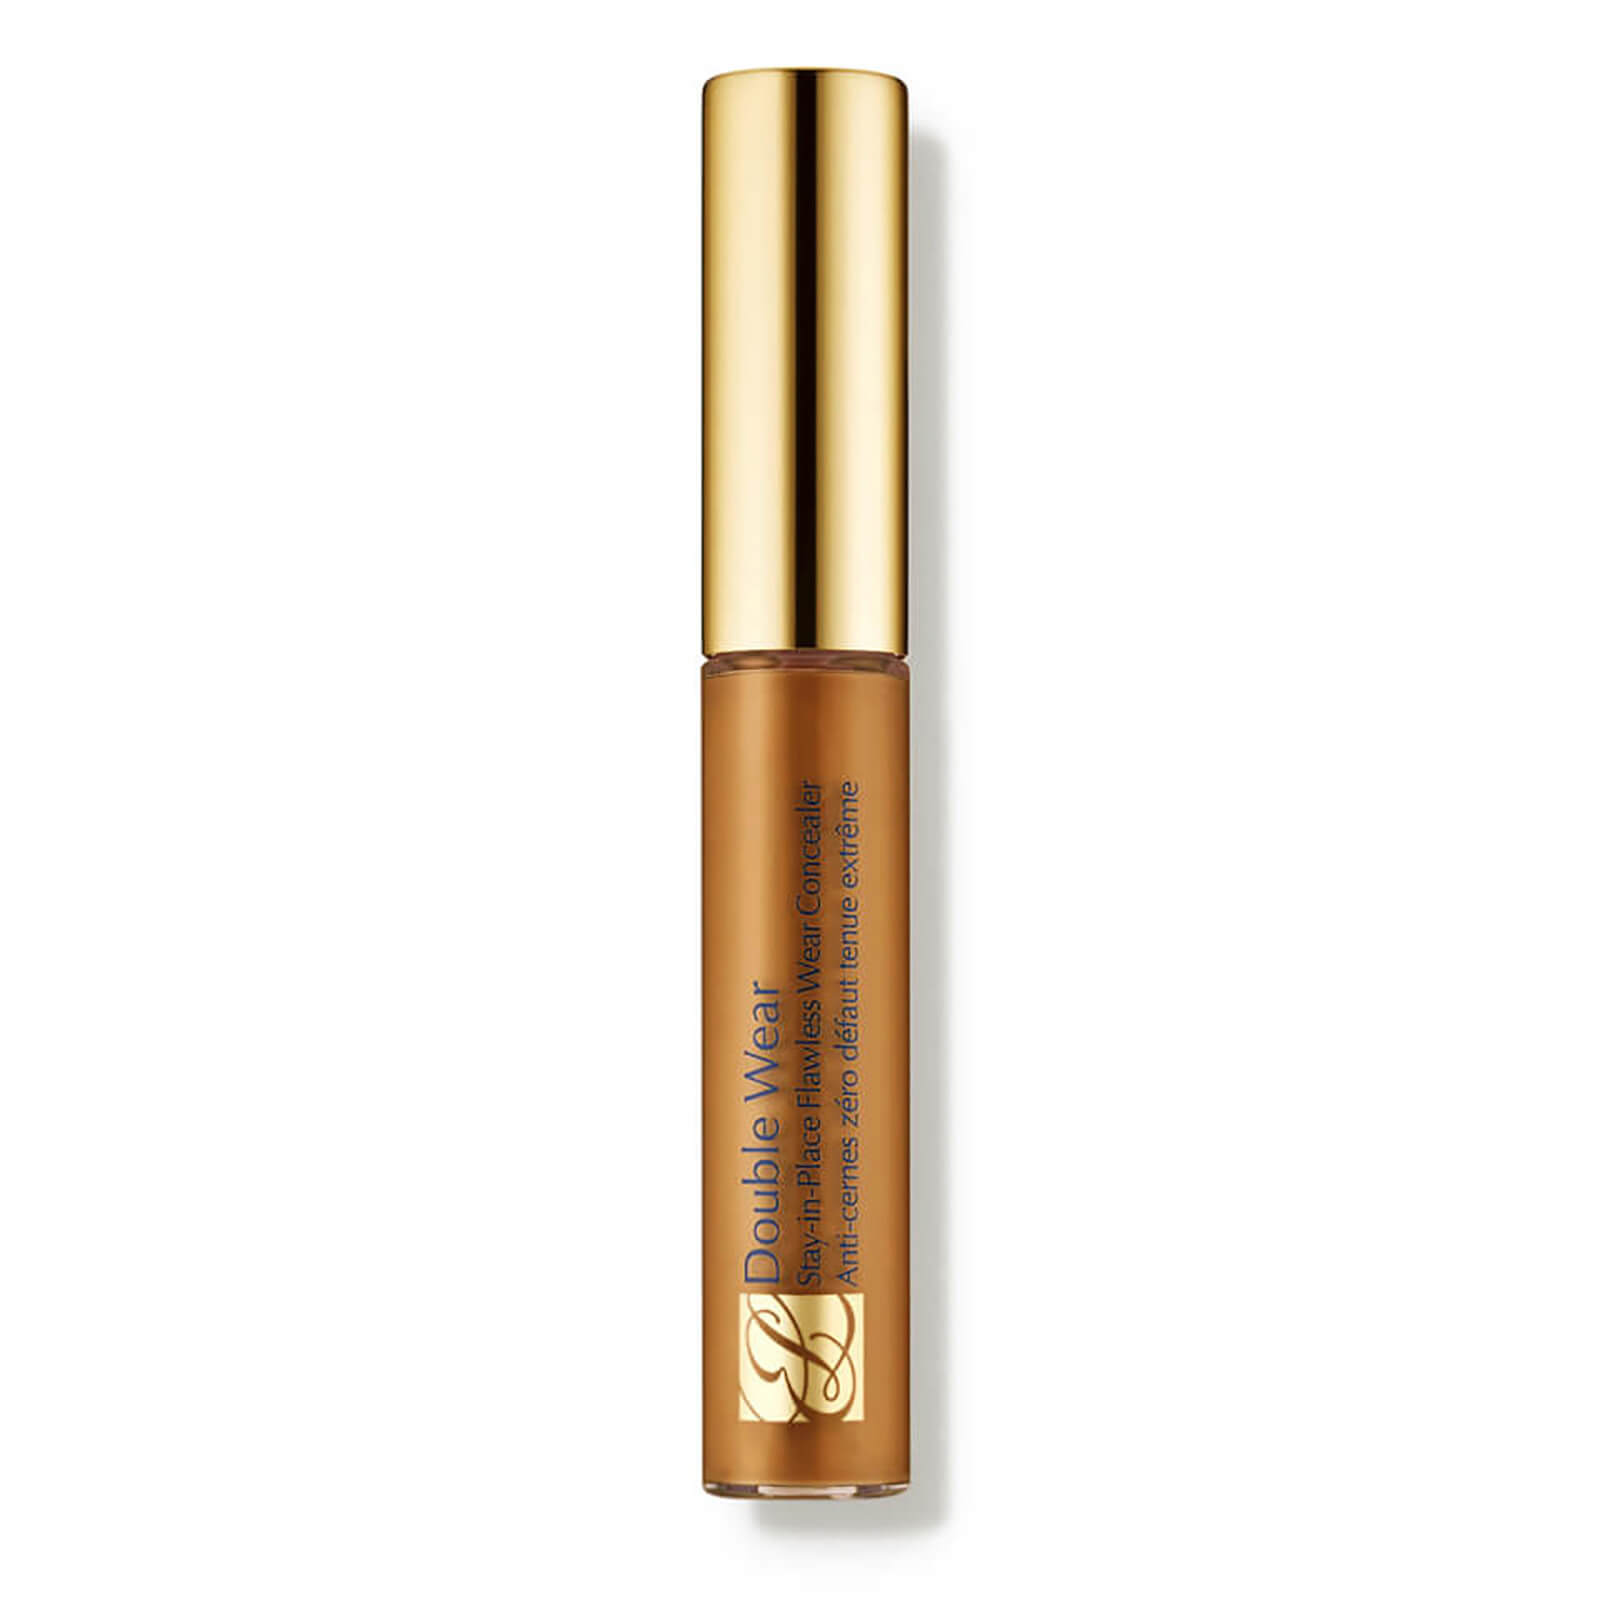 Watch a story about ESTÉE LAUDER DOUBLE WEAR STAY-IN-PLACE FLAWLESS WEAR CONCEALER 7ML (VARIOUS SHADES) - 5N DEEP